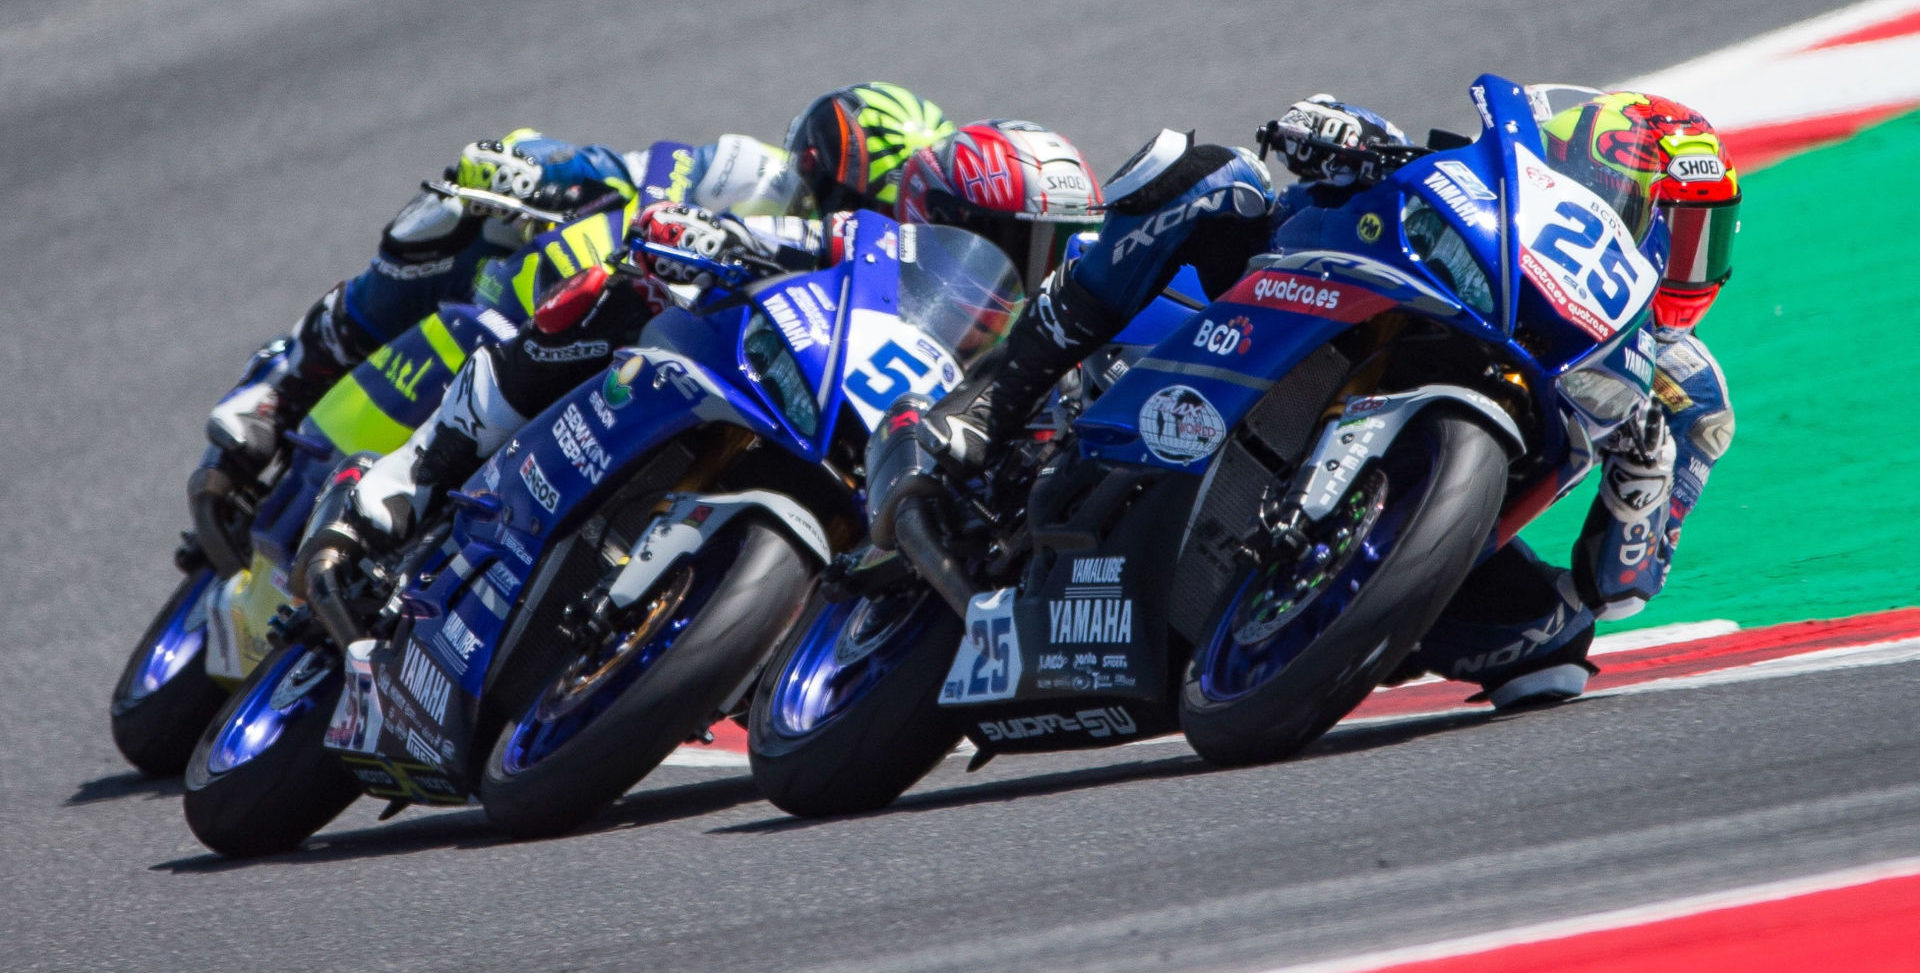 Andy Verdoïa (25) and Galang Hendra Pratama (55) are moving up from the FIM Supersport 300 World Championship to the FIM Supersport World Championship in 2020. Photo courtesy of Yamaha.